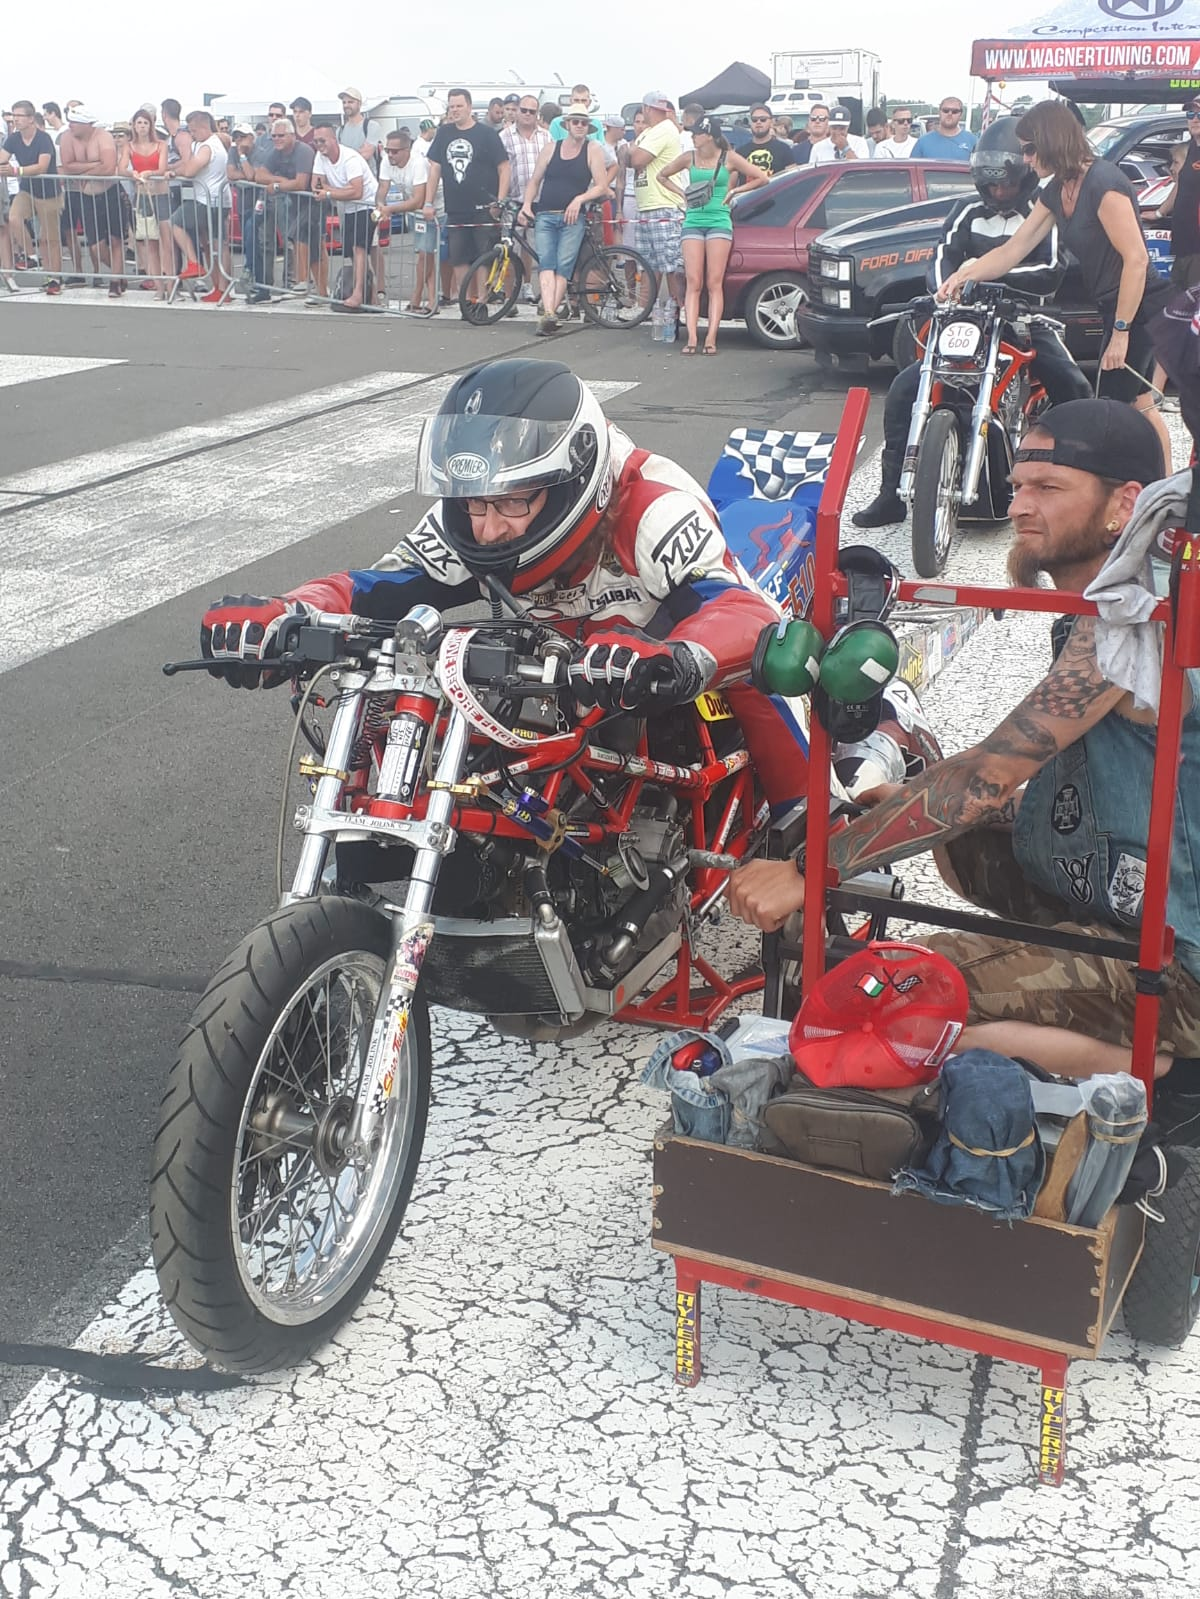 8-10 june 2018 European Super twin Top Gas Drag Race Alkersleben Germany Crew Chief Kralle Viehrig (Chemnitz Germany) starting up the Ducati 1198 RS Drag Bike. WE Qualified 5th from the 12 Top Gas riders, the track have not good grip. We did on the 1/8 Mile (201 m) 5.860 sec with 201 kmh with 5th gears, 60 foot (18 m) 1.459 (on a good track we do 1.2 on the 60 ft). Eleminations 1/8 Final Herman Jolink did 5.941 sec with 201 kmh def. Andreas Herr Germany on V-Twin 7.403-130 (Qualified with 6.399-174 kmh) Herr waiting ferry long to go in stage Jolink go then first in stage(wen you wait to long you get a red light) 1/4 final Olaf Menzi CH on 2622 Prostock V-Twin 5.396-216 kmh def Herman Jolink 5.864-201 kmh Rek Jolink 0.166 Menzi 0.288 Jolink ridng ferry konstant runs from 5.8 seconds Top Gas Championship after two rounds Jolink NL on the 4th Place with 520 points 1st Lymant De 1370 points last 15th Severa Czech Republic